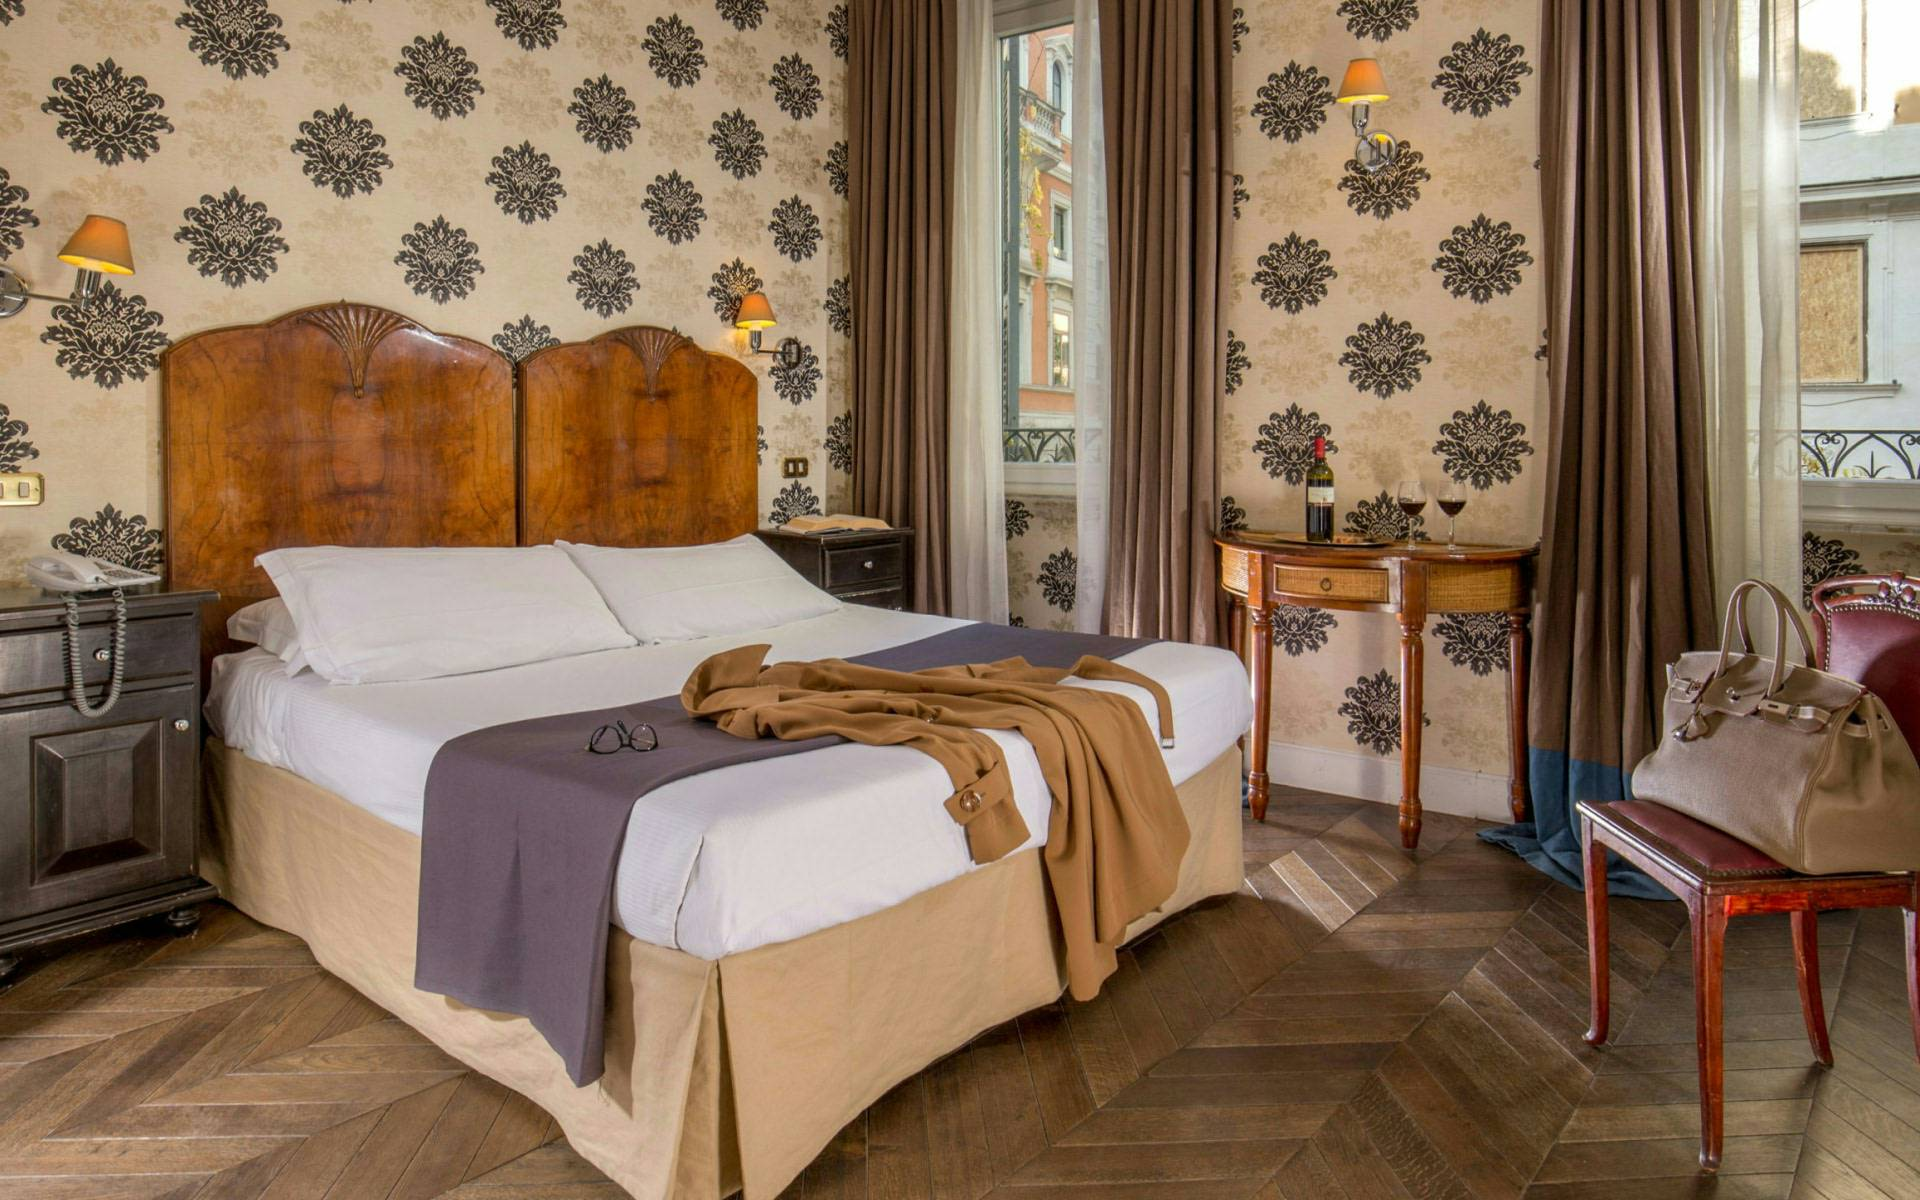 hotel-in-the-center-of-rome-boutique-hotel-anahi-rome-yellow-double-room-09